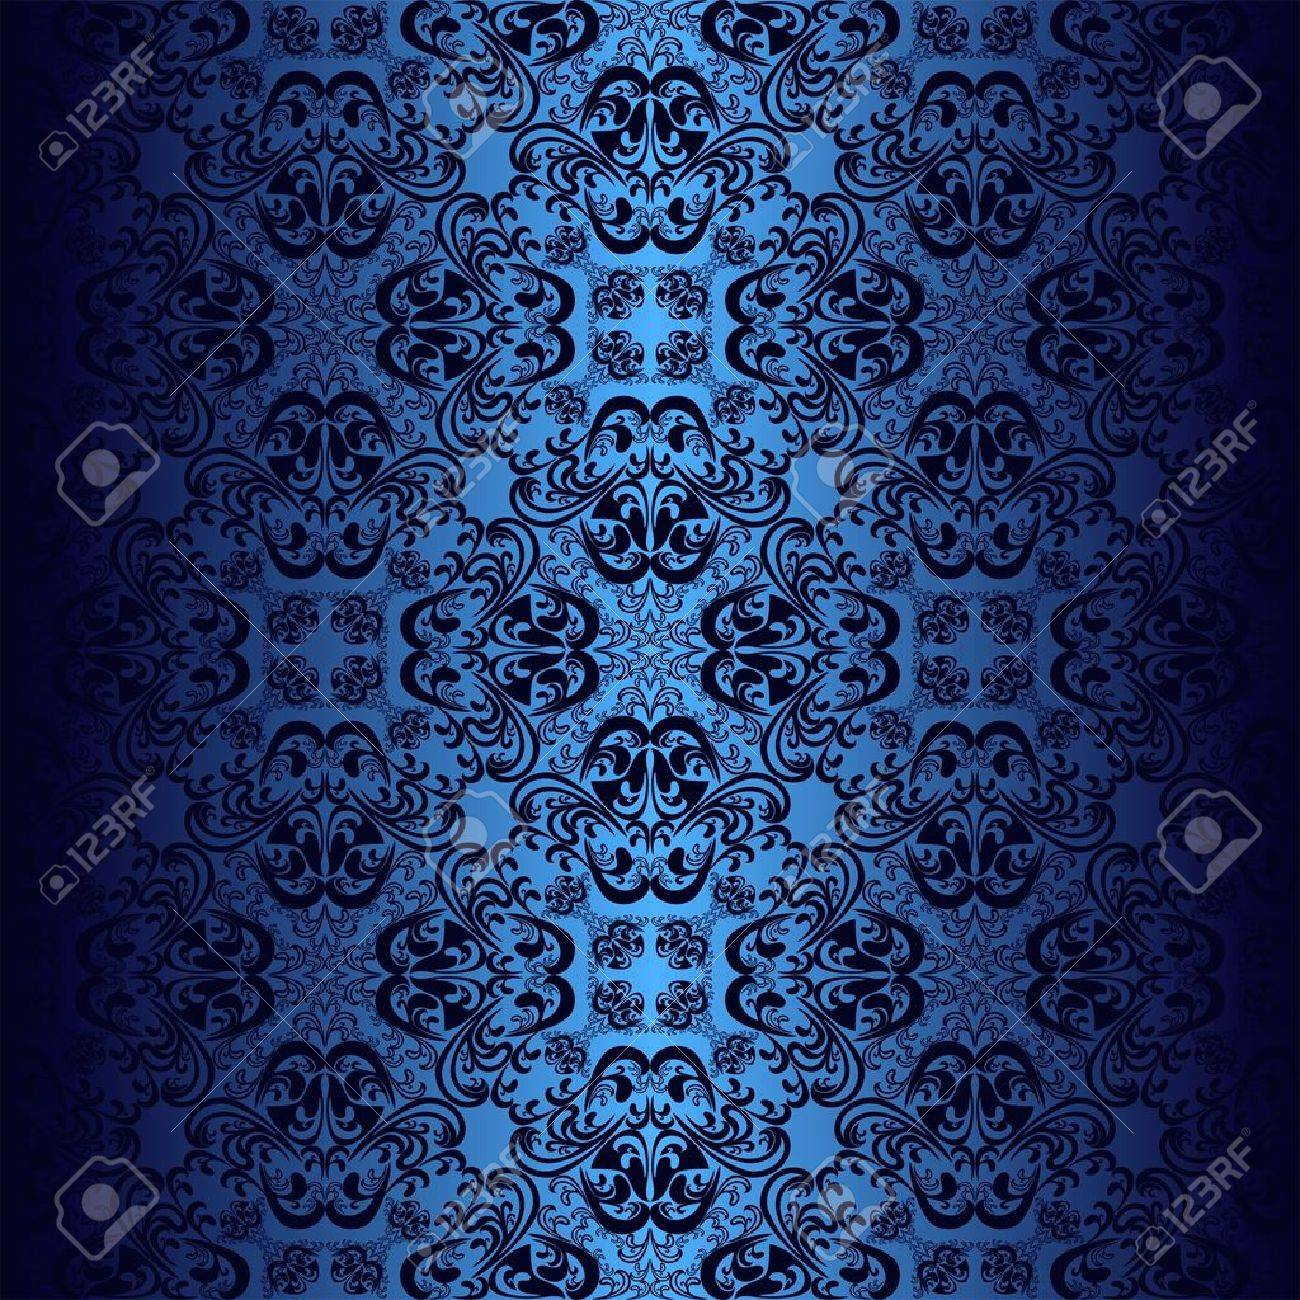 Bleu Marine Et Bleu Nuit seamless dark blue wallpaper.